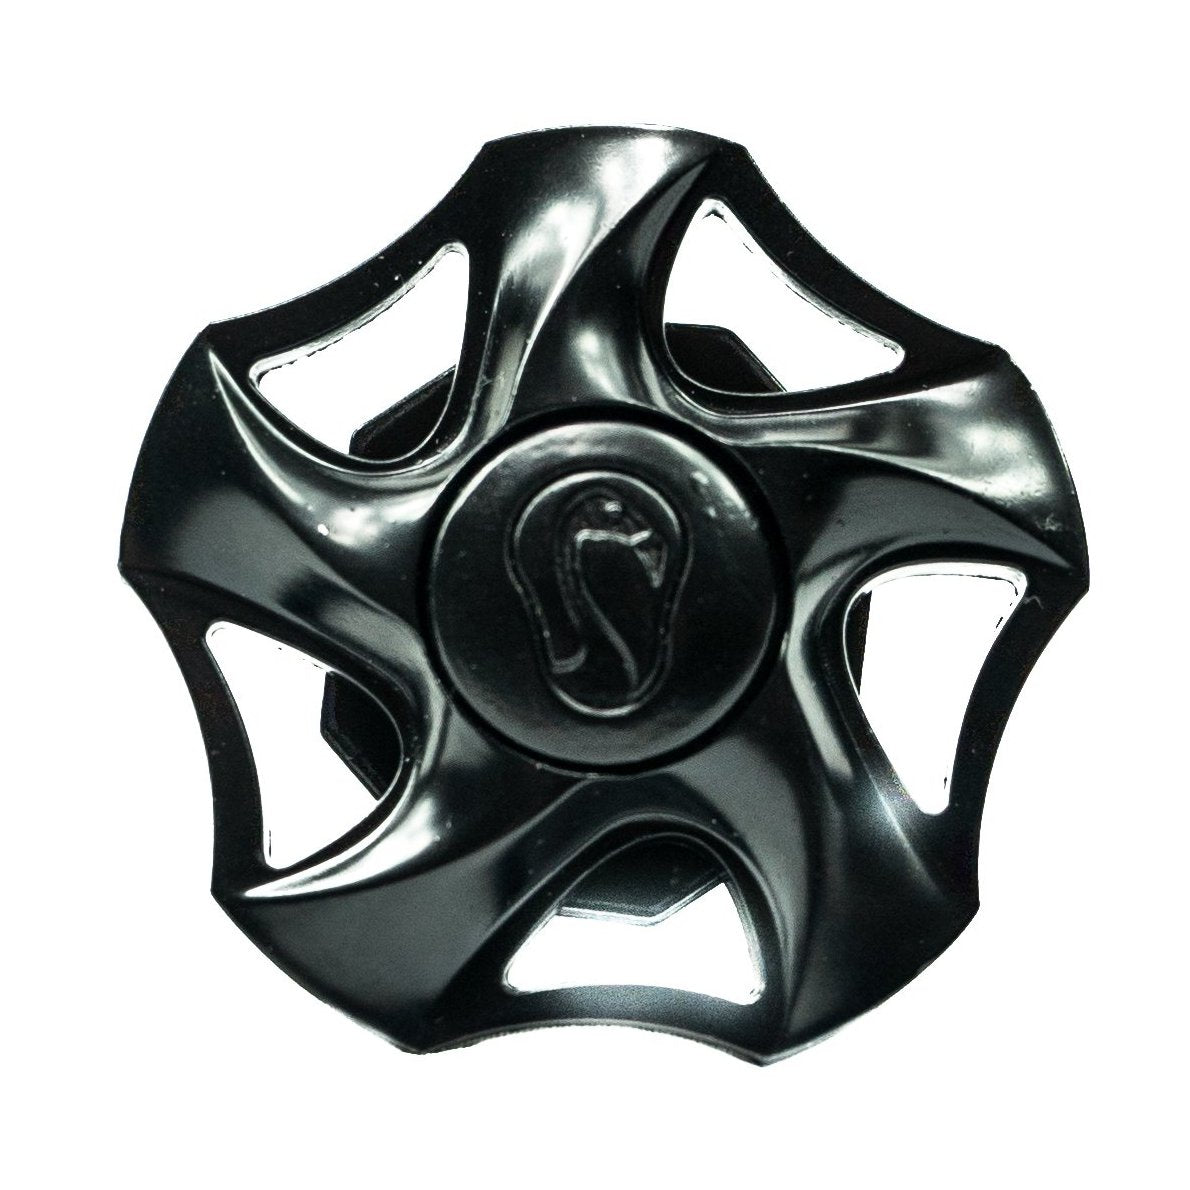 Fidget Spinner Butt End- Black